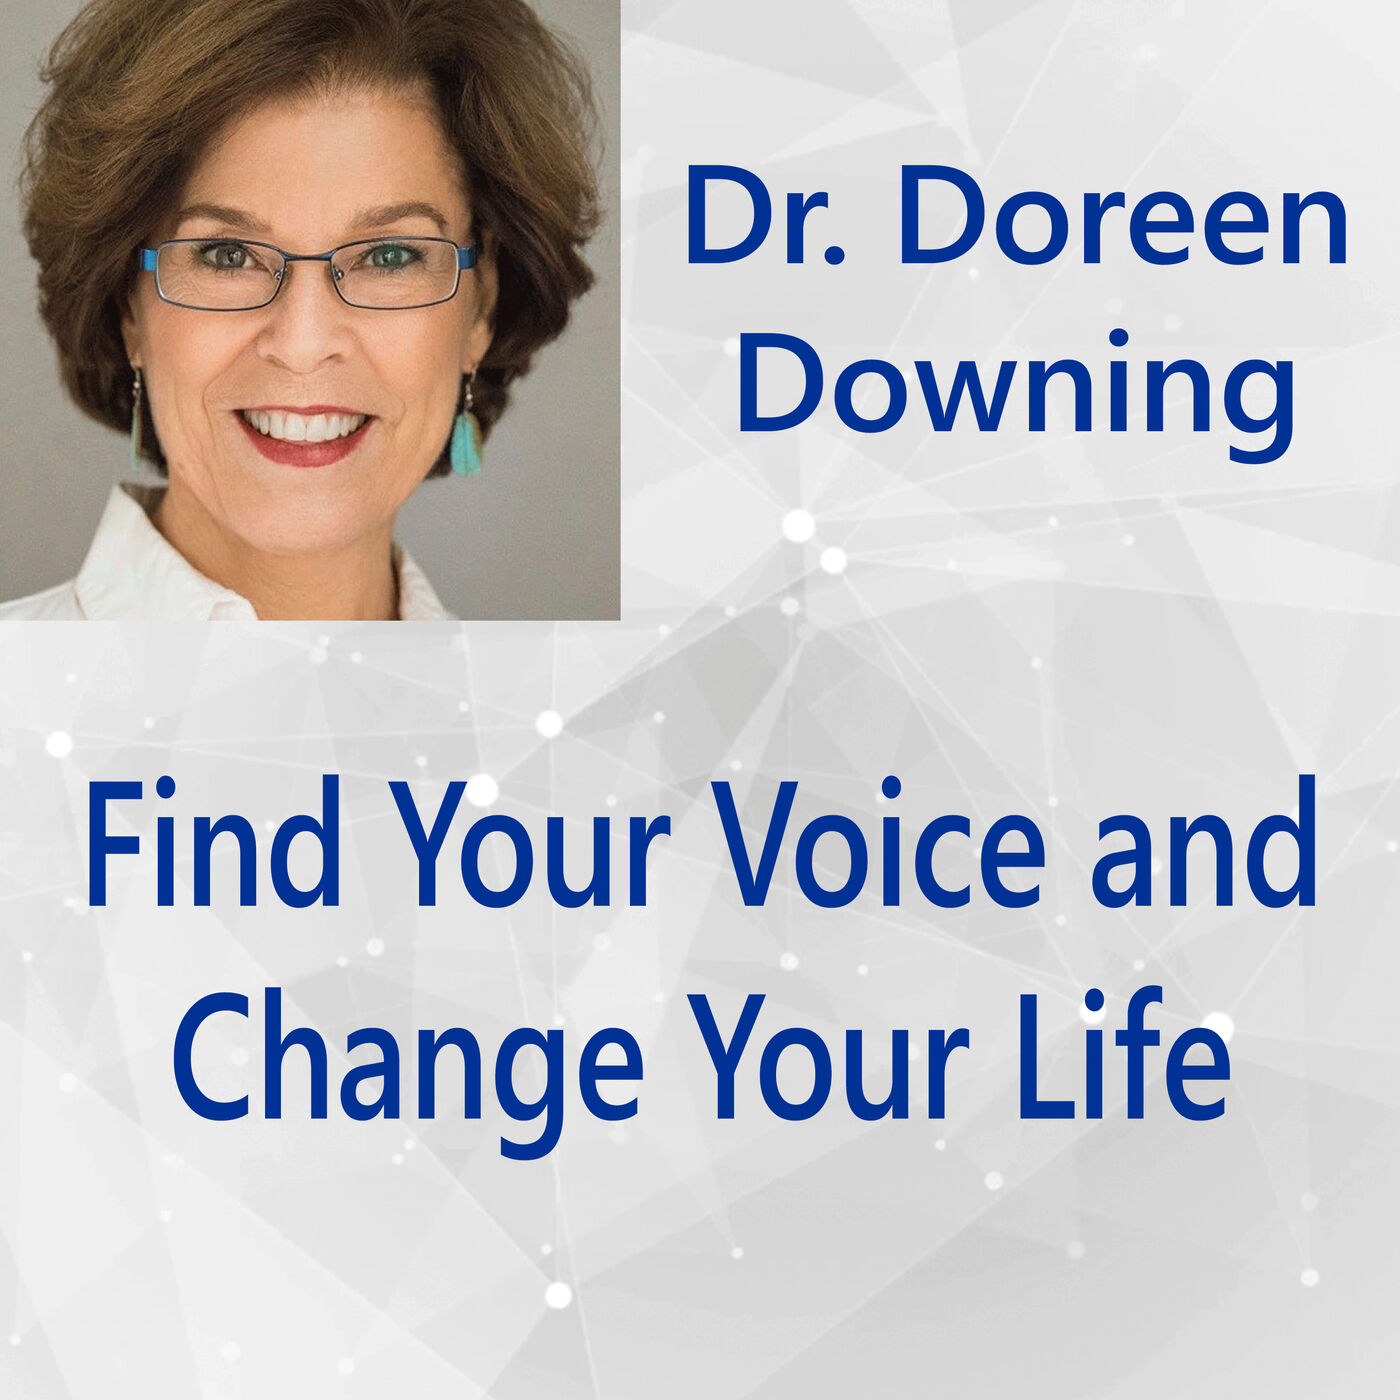 118: Find Your Voice and Change Your Life